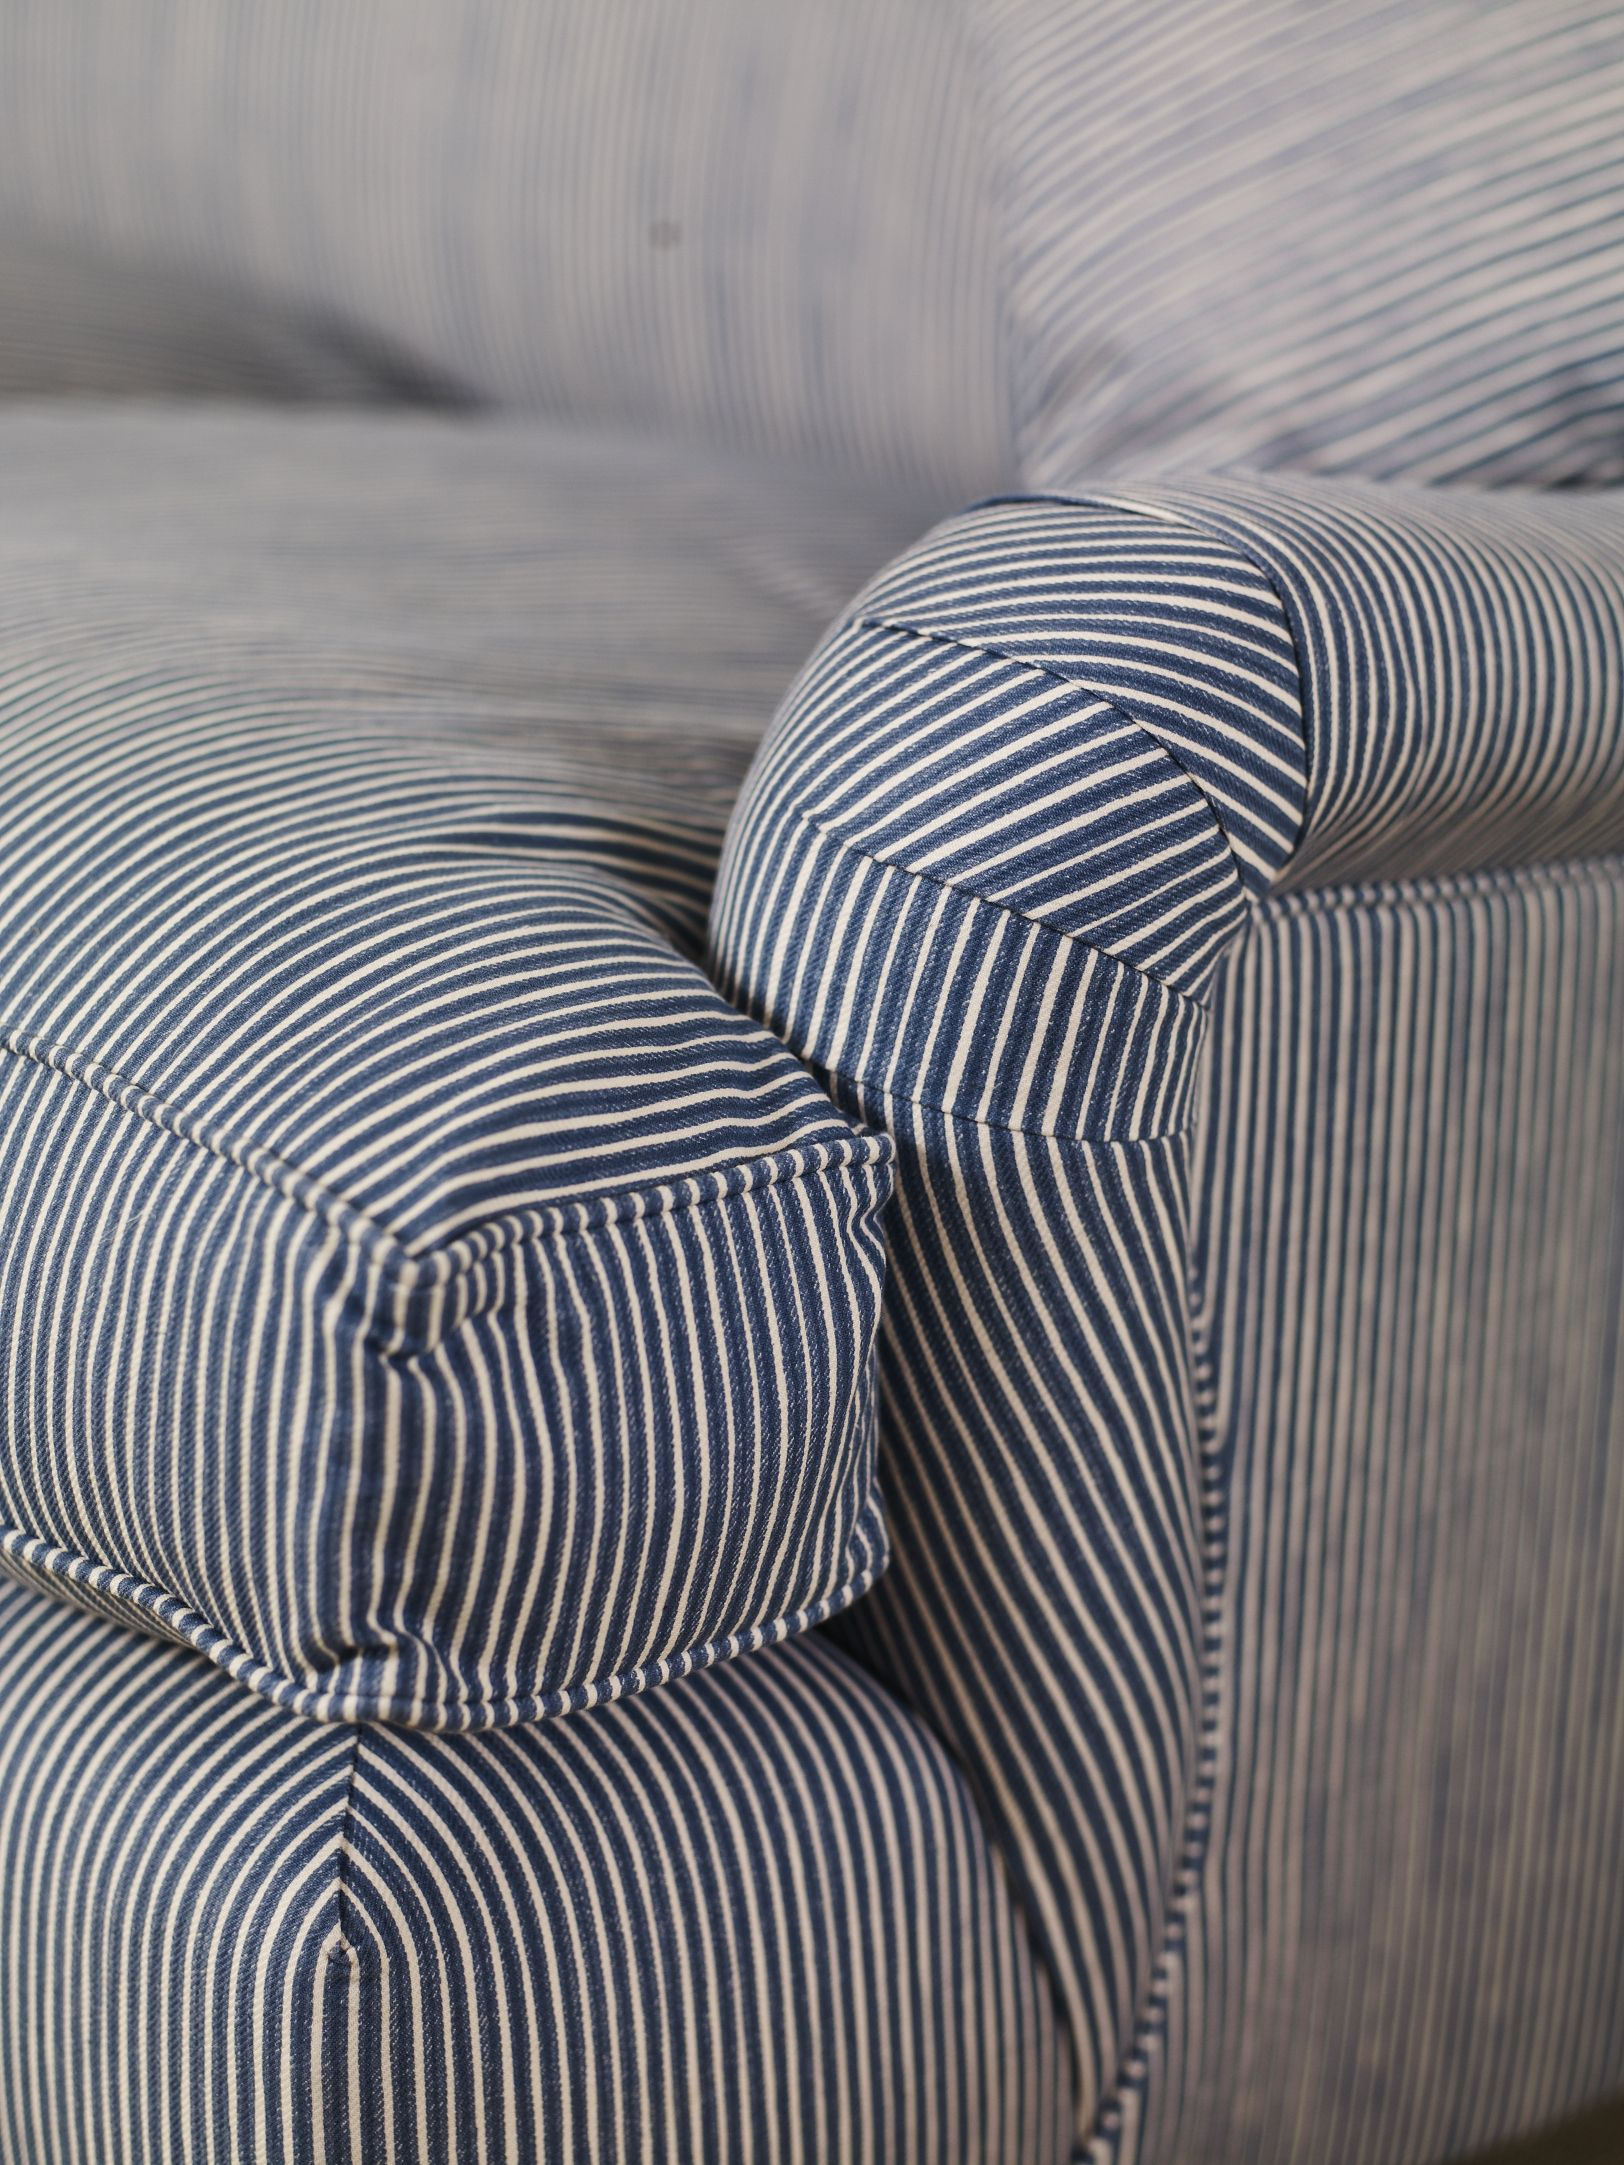 Blue Stripe Roll Arm … | Our New English Cottage | Pinterest Inside Bailey Roll Arm Skirted Swivel Gliders (Image 11 of 25)